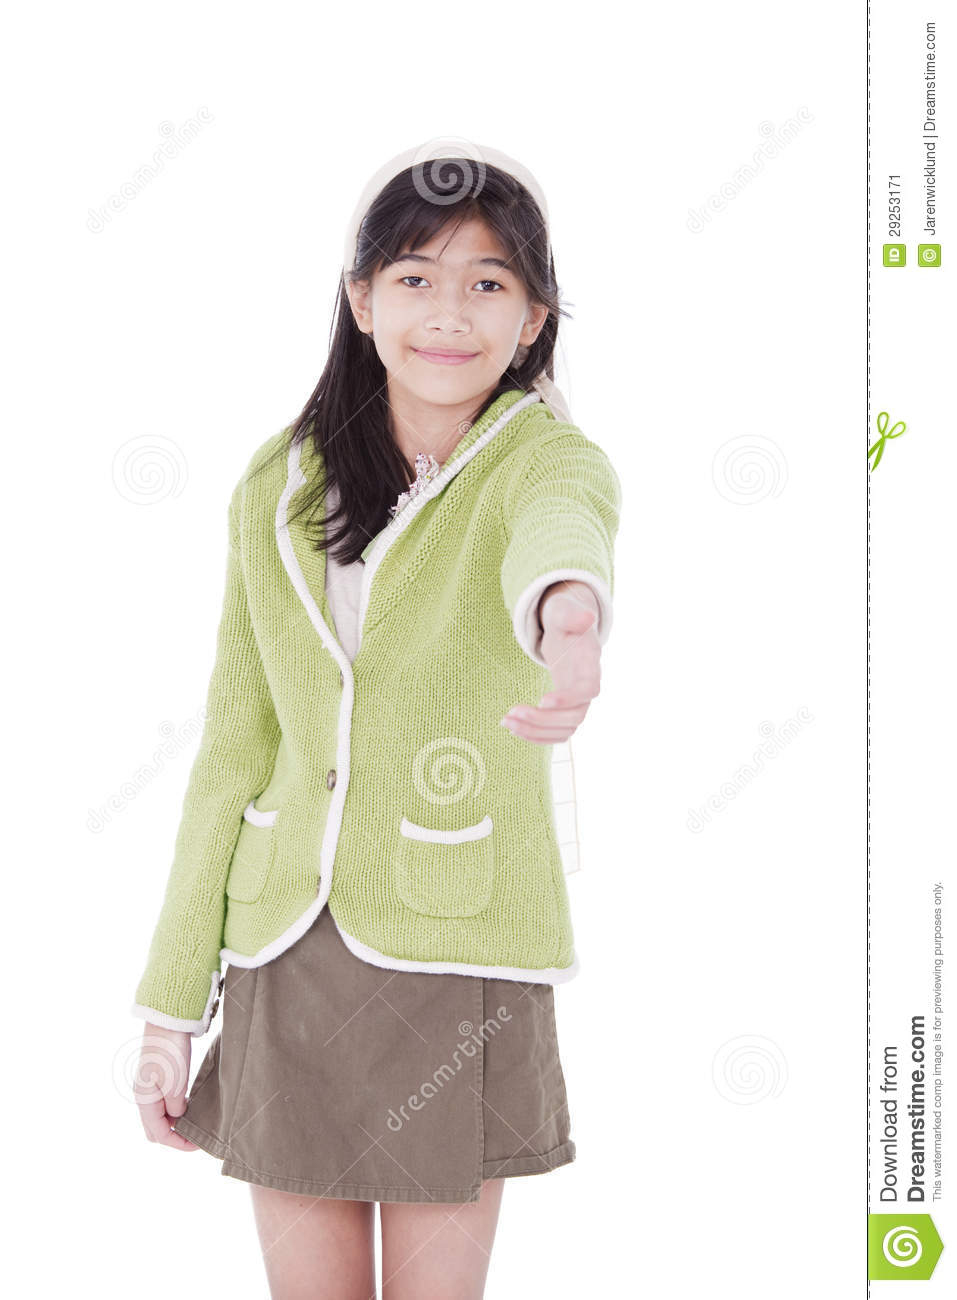 Biracial Asian Girl In Lime Green Sweater Extending Hand In Greeting